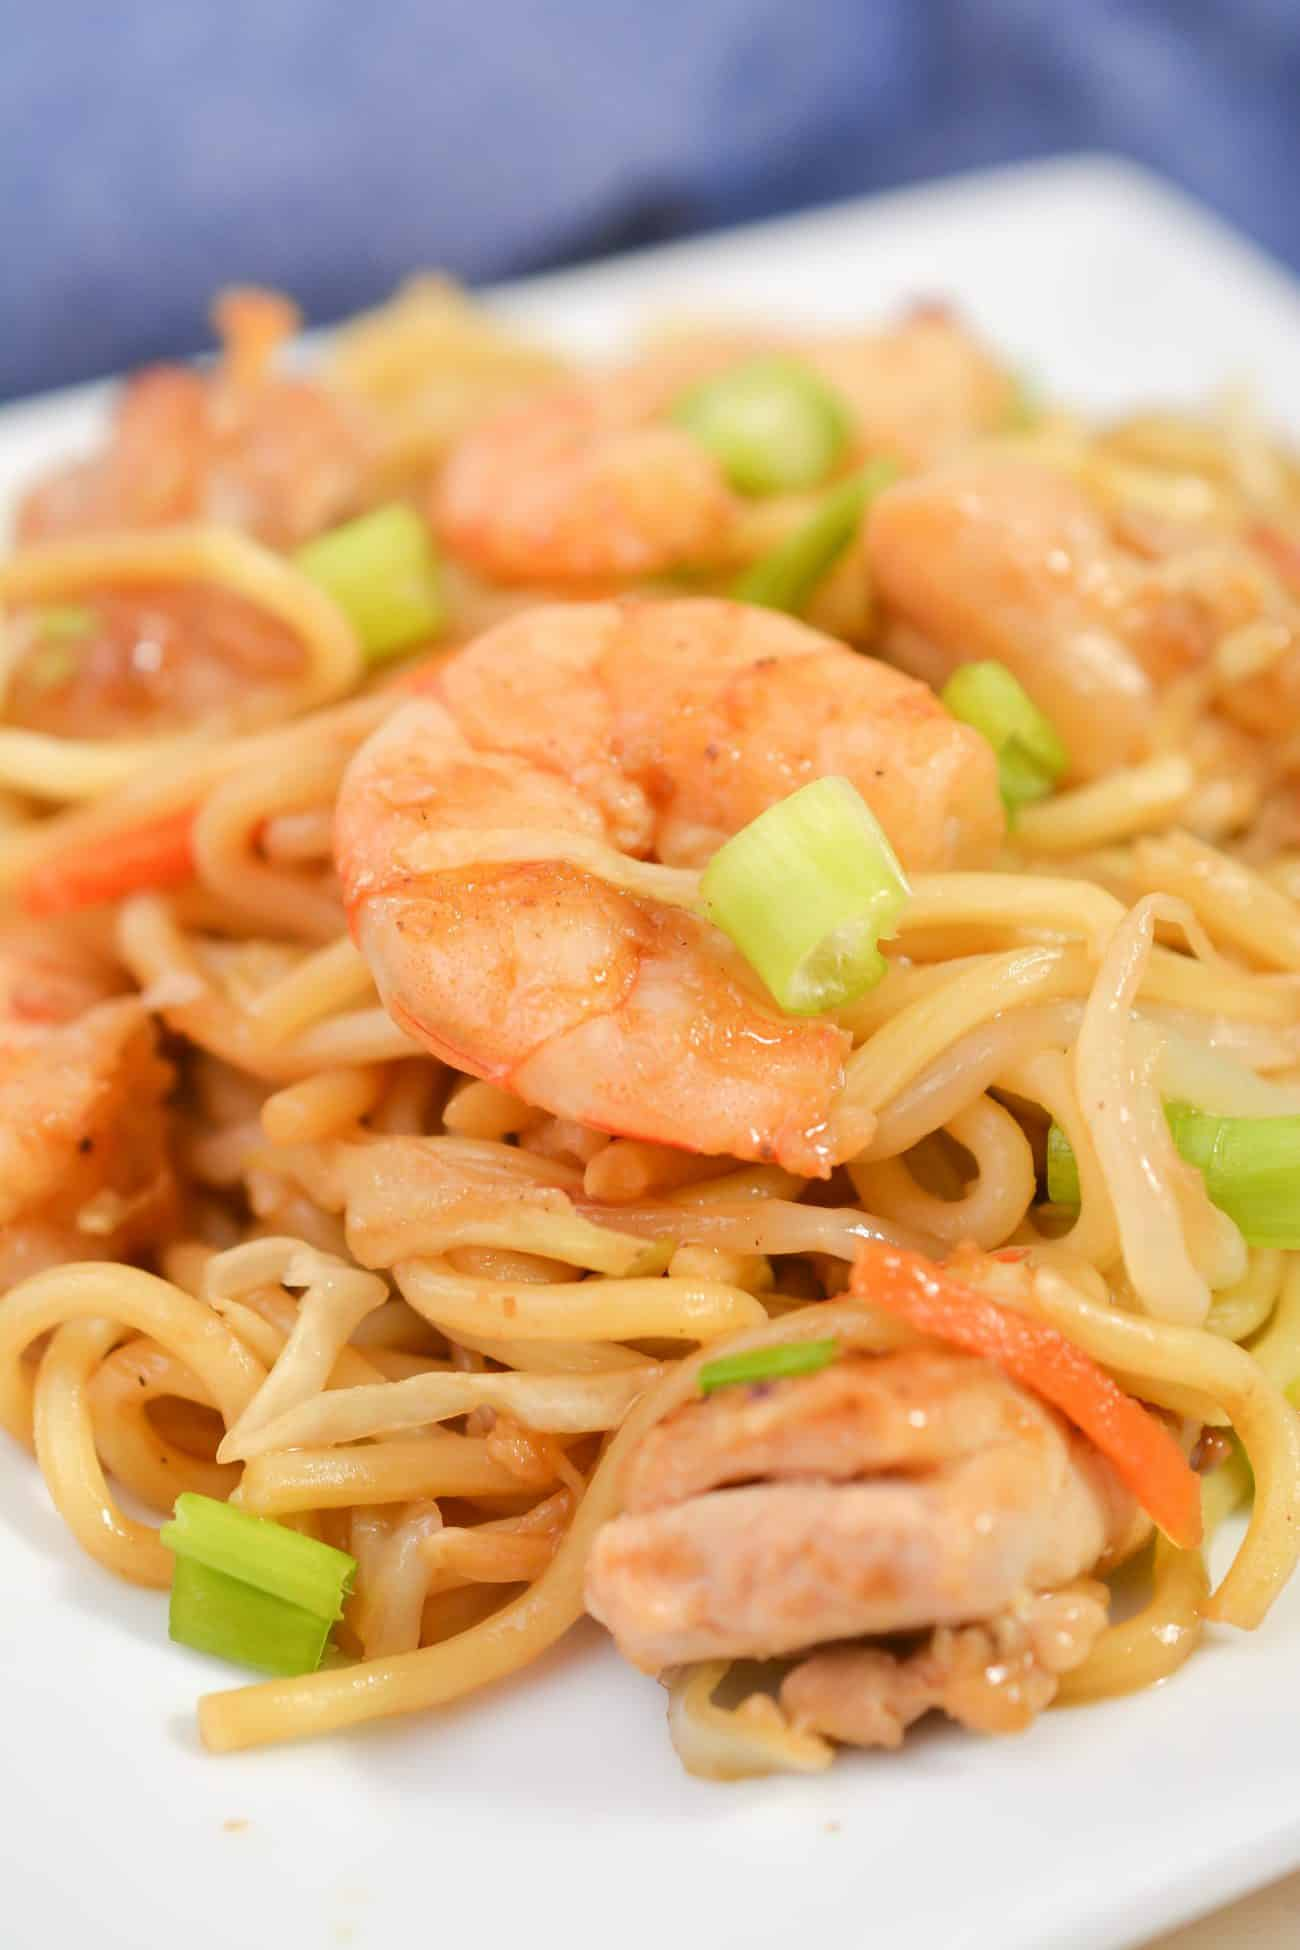 Shrimp and Chicken Chow Mein